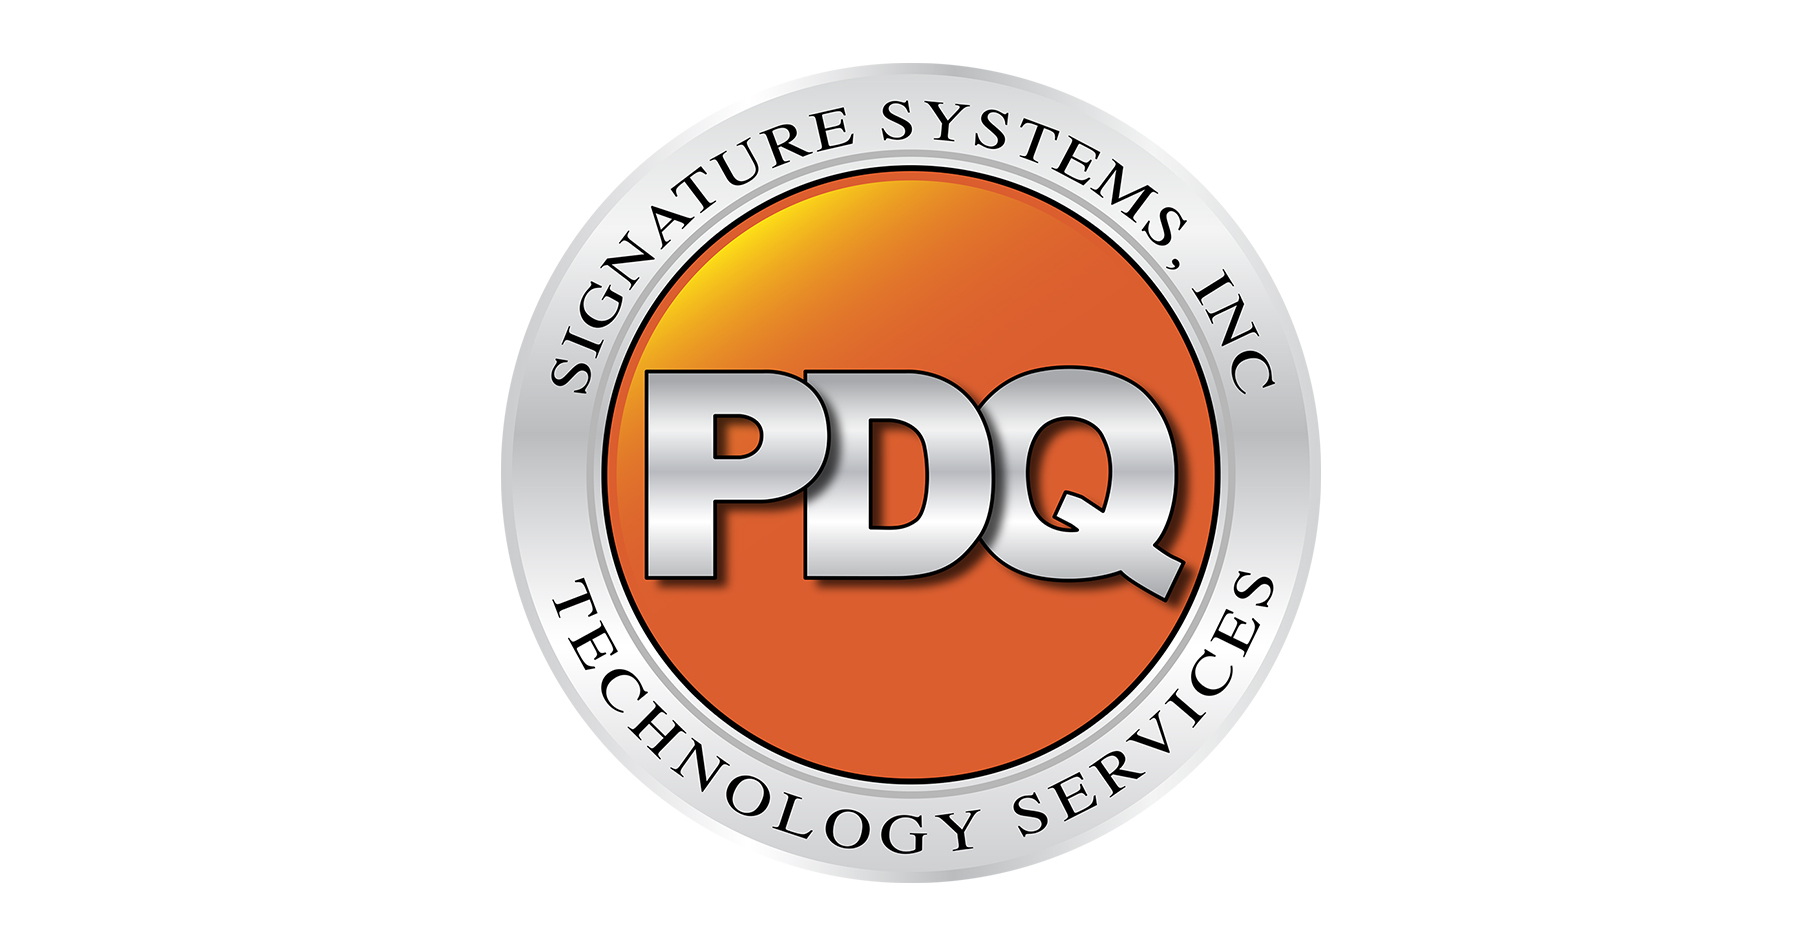 Pdq Signature Systems Fstec